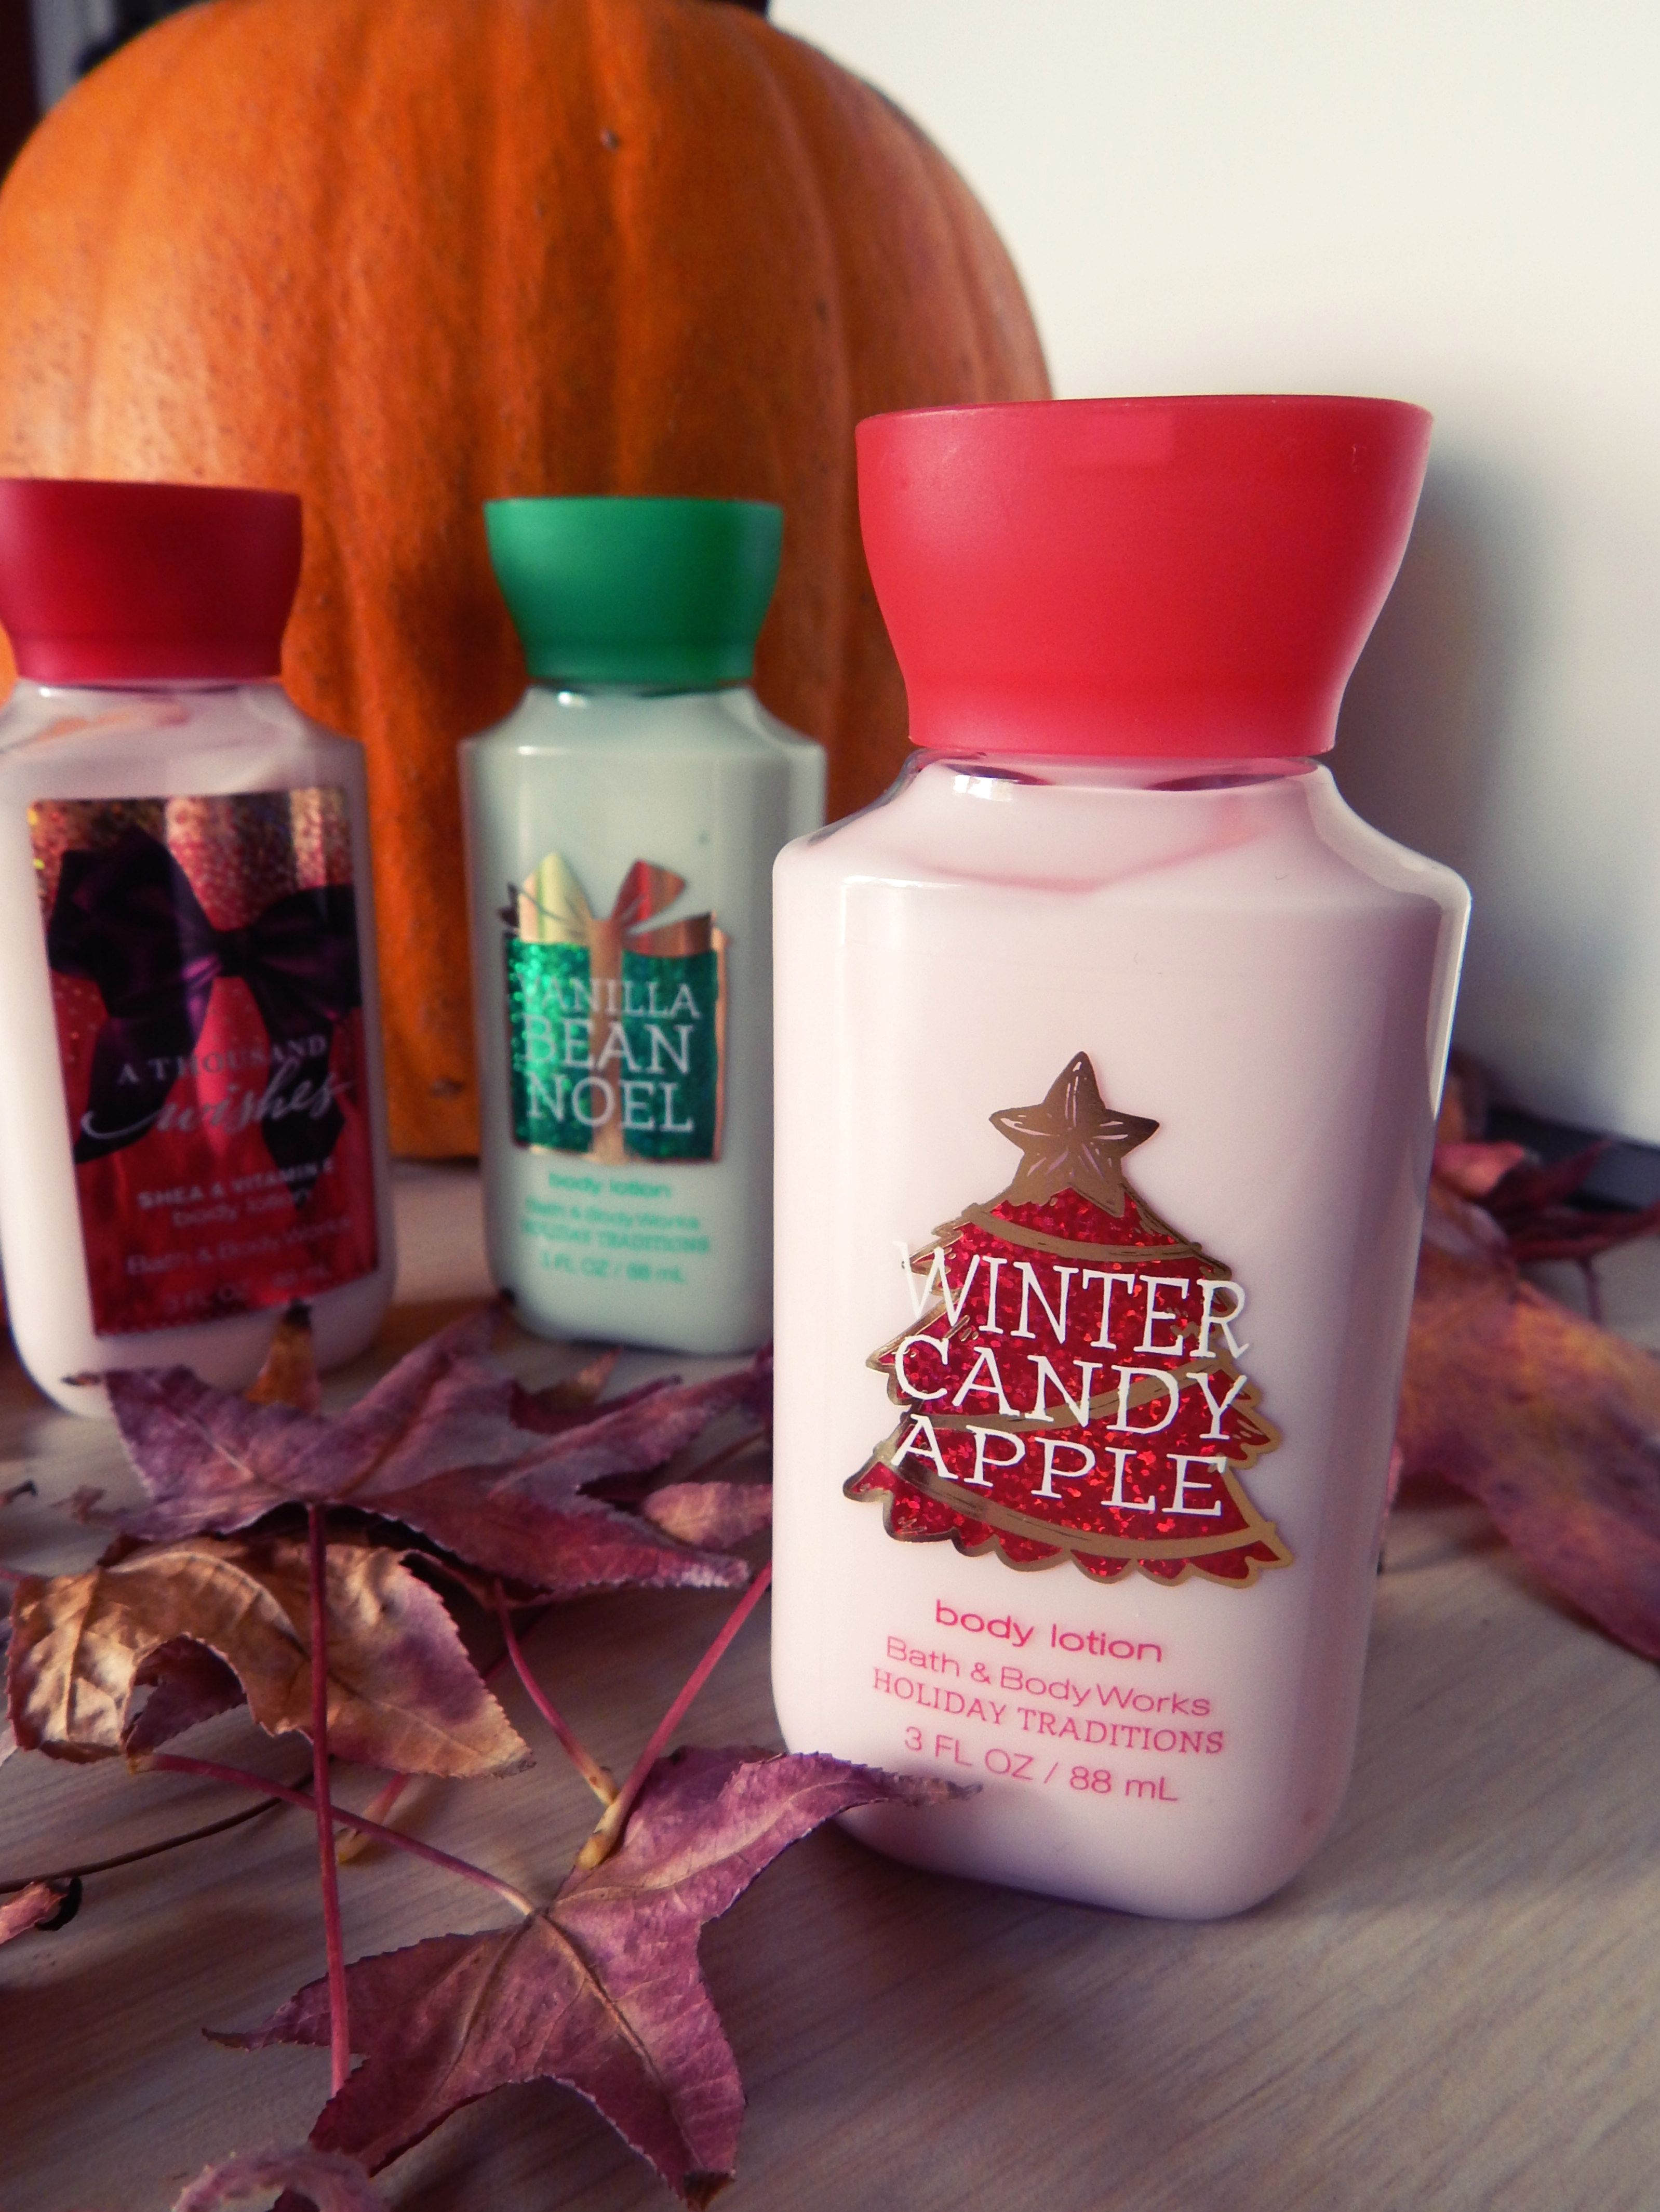 Bath and body works holiday scents - Vanilla Bean Noel This One Is A Delicate Vanilla Scent That Is Very Calming It S A Little Different Than Their Warm Vanilla Sugar Scent It S Less Strong